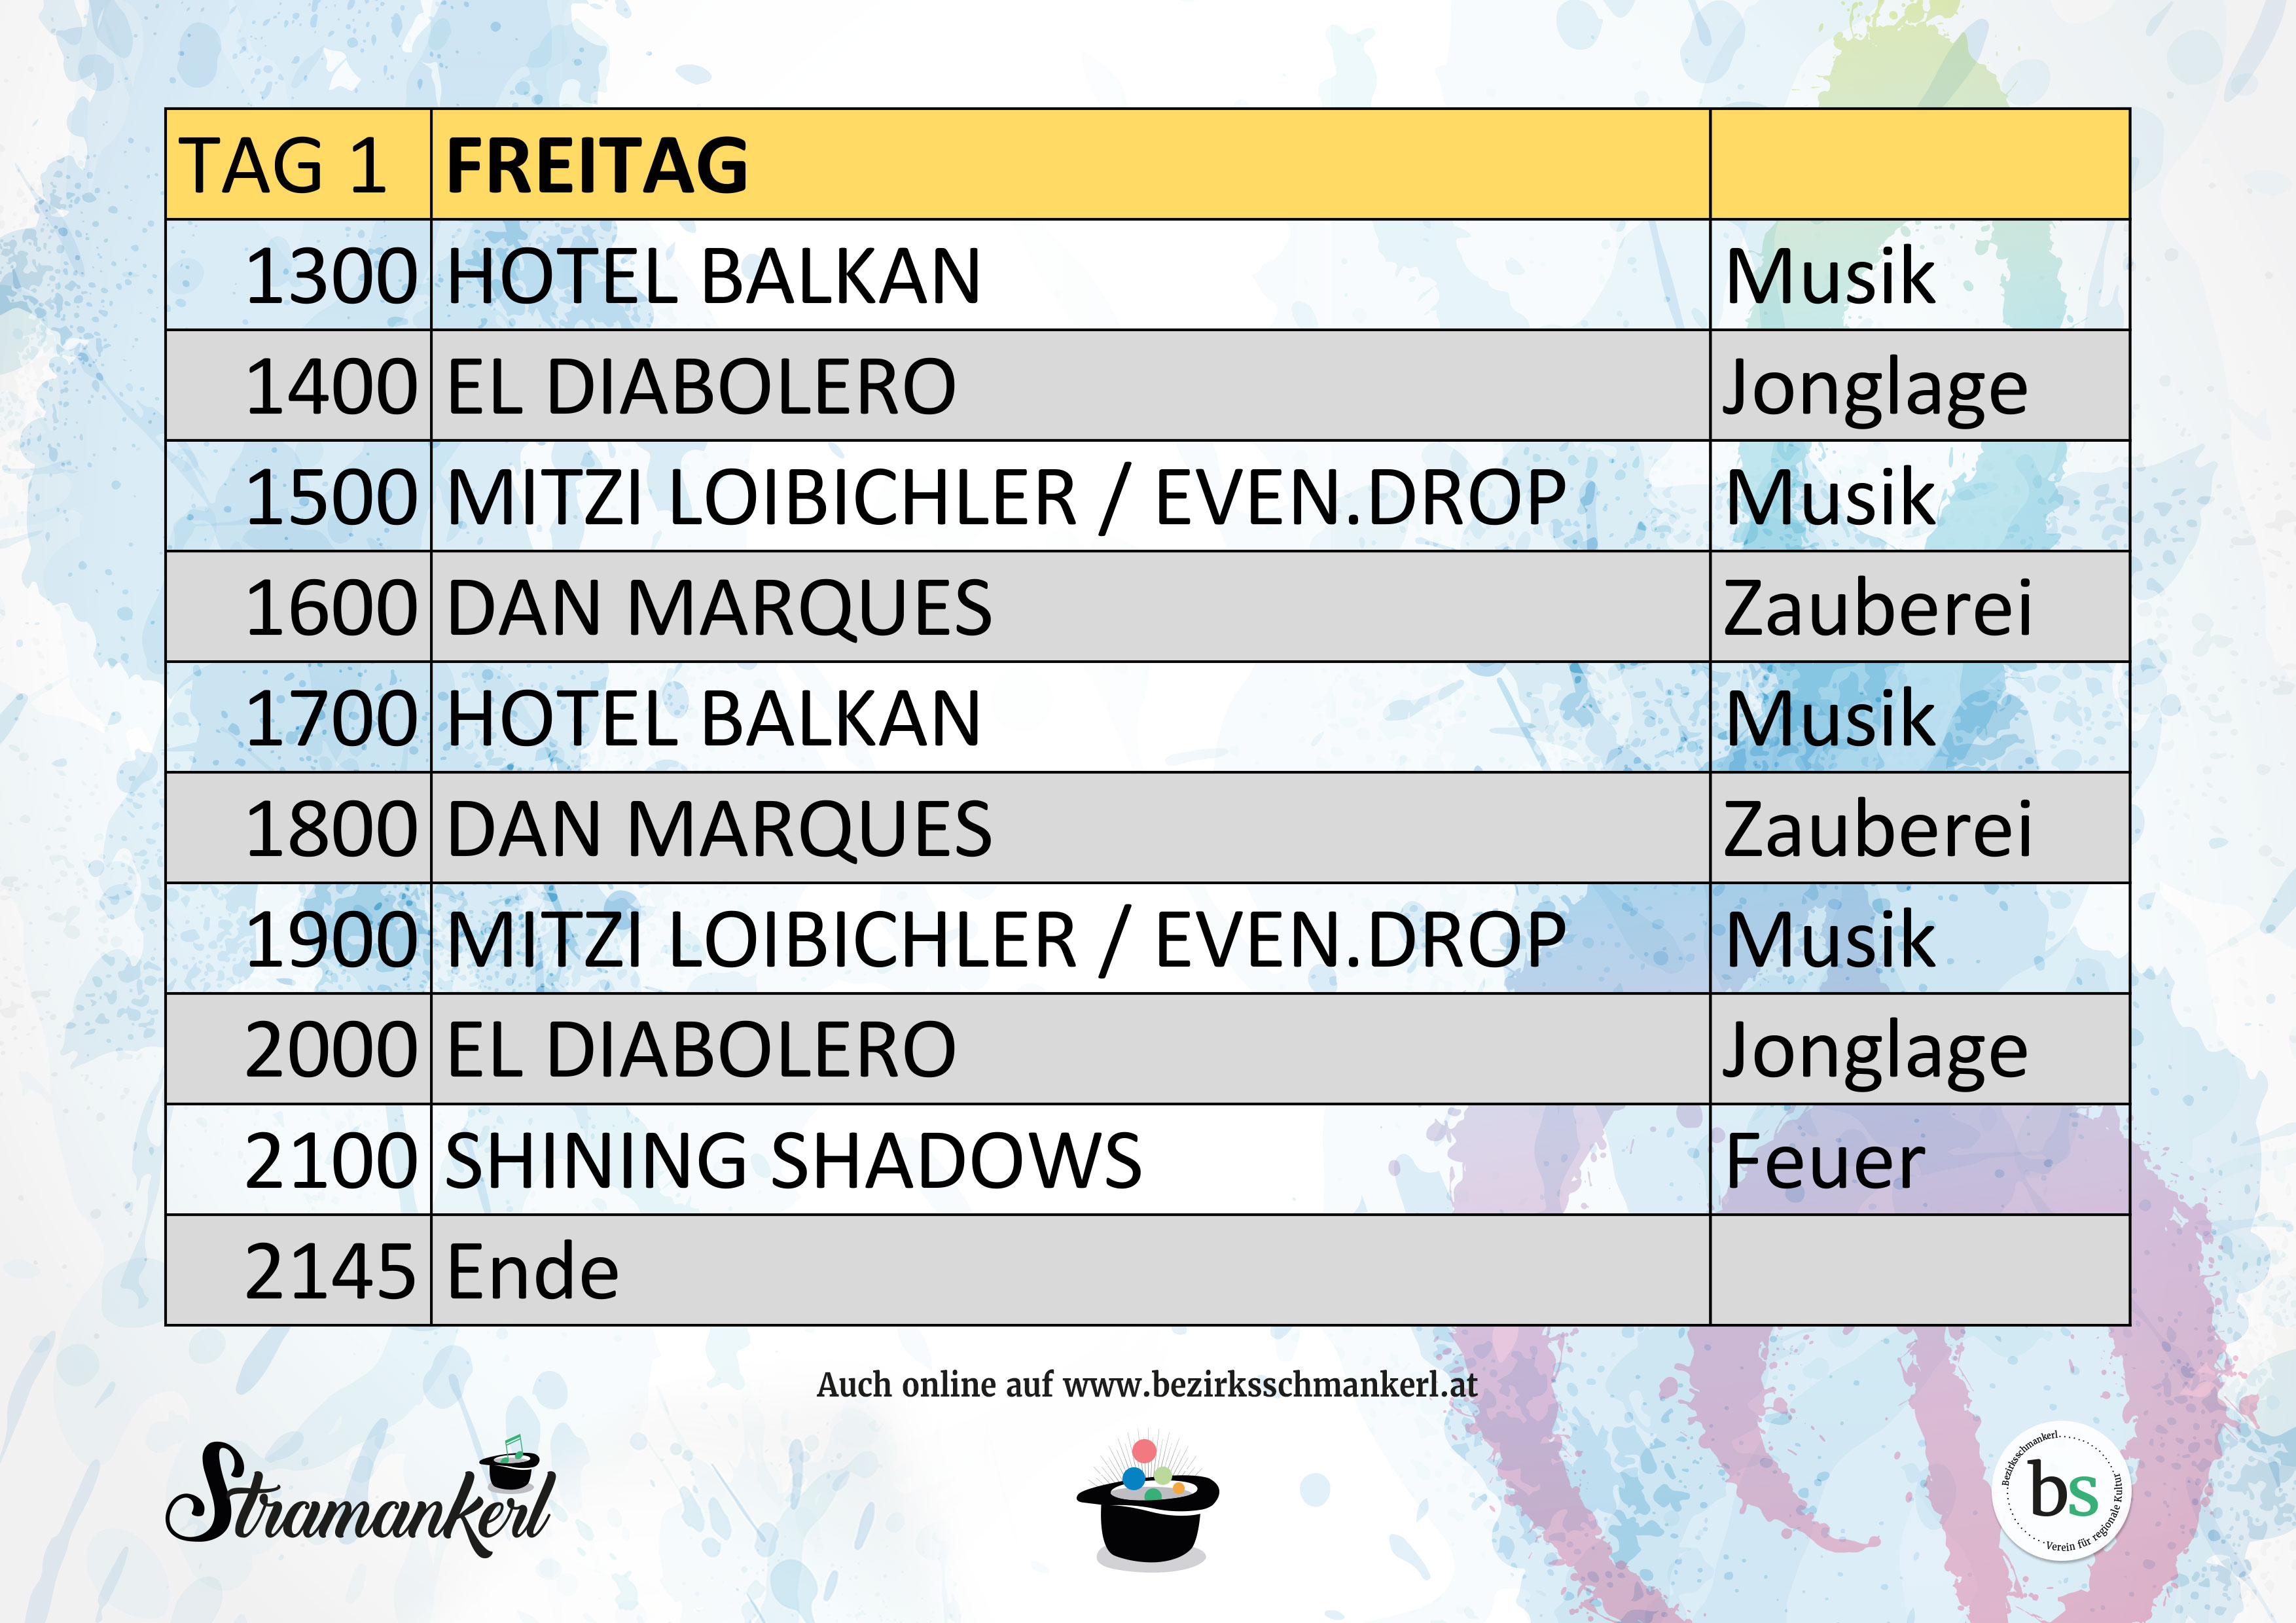 Stramankerl 2019 Timetable